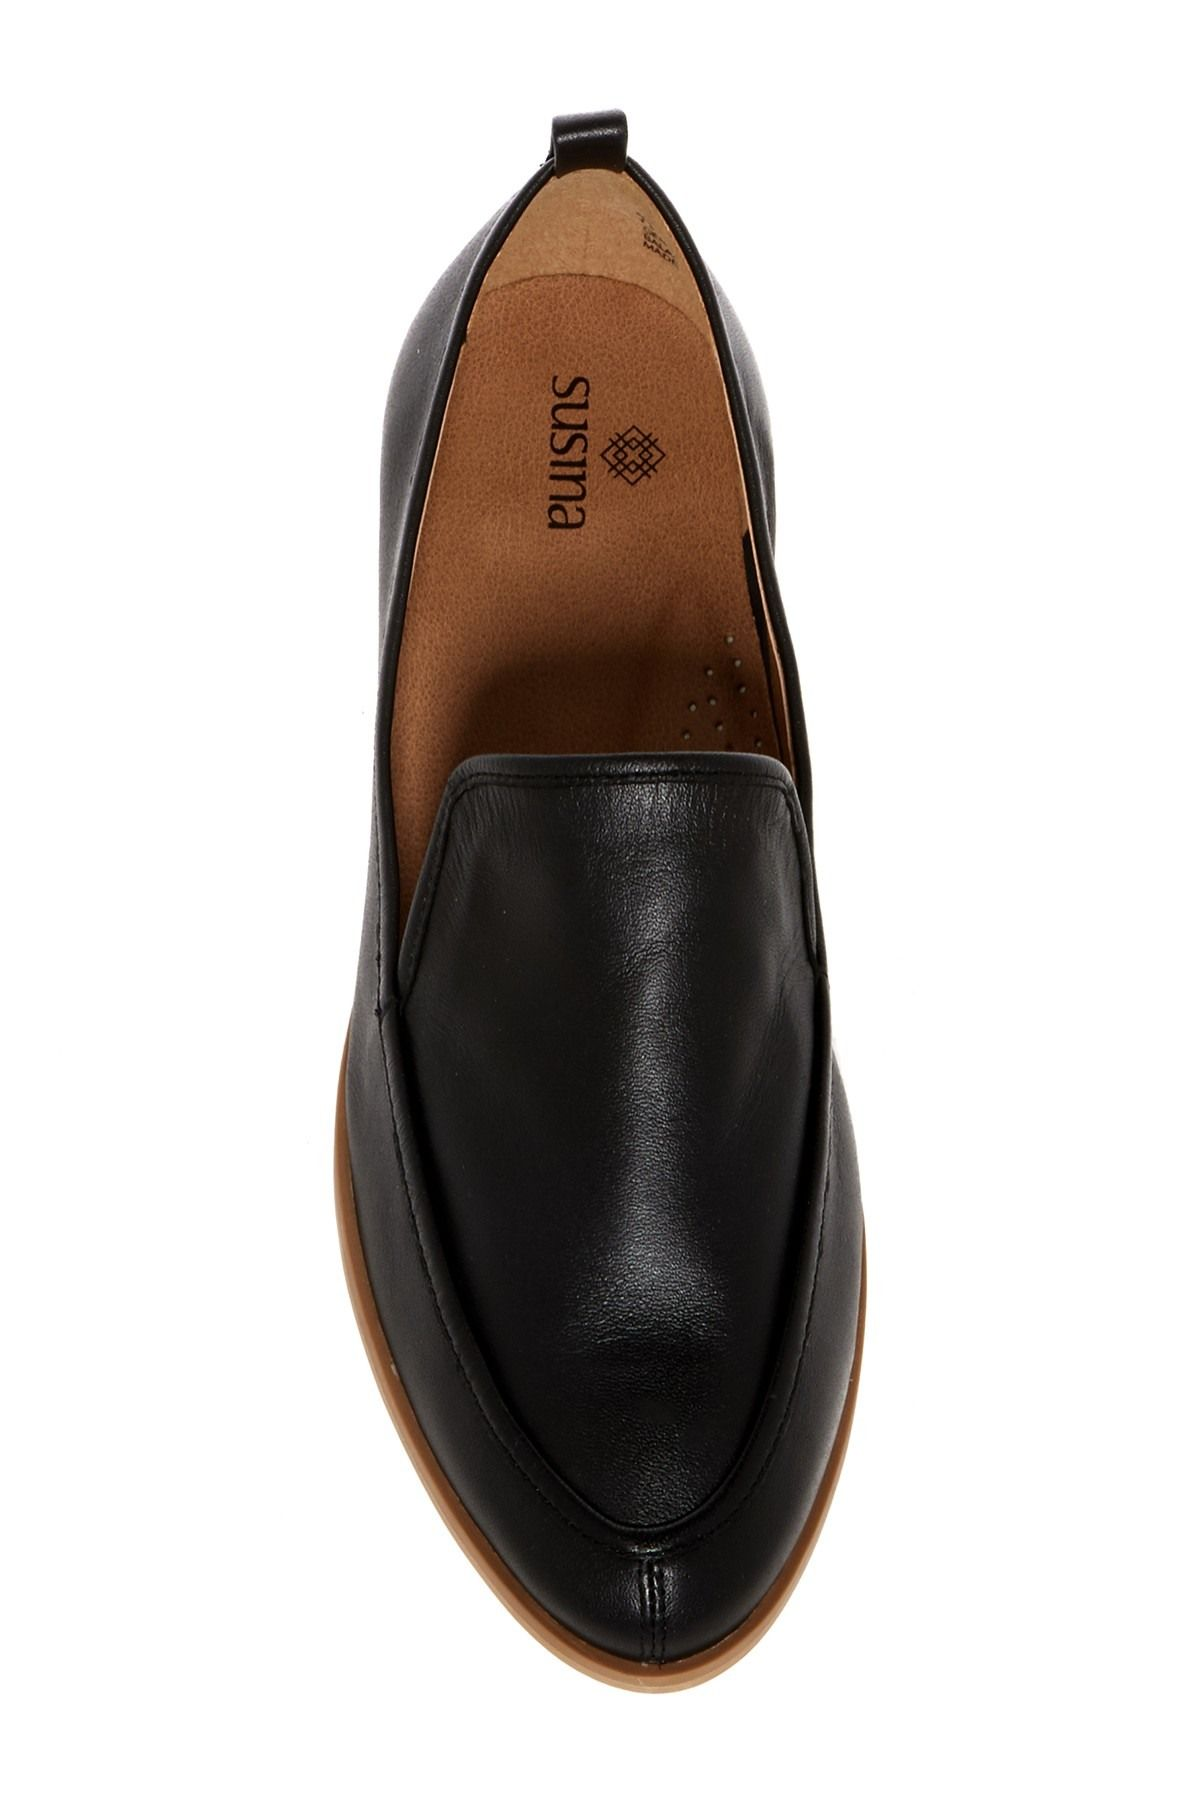 595115c7deb SUSINA - Kellen Almond Toe Loafer - Wide Width Available. Free Shipping on  orders over  100.